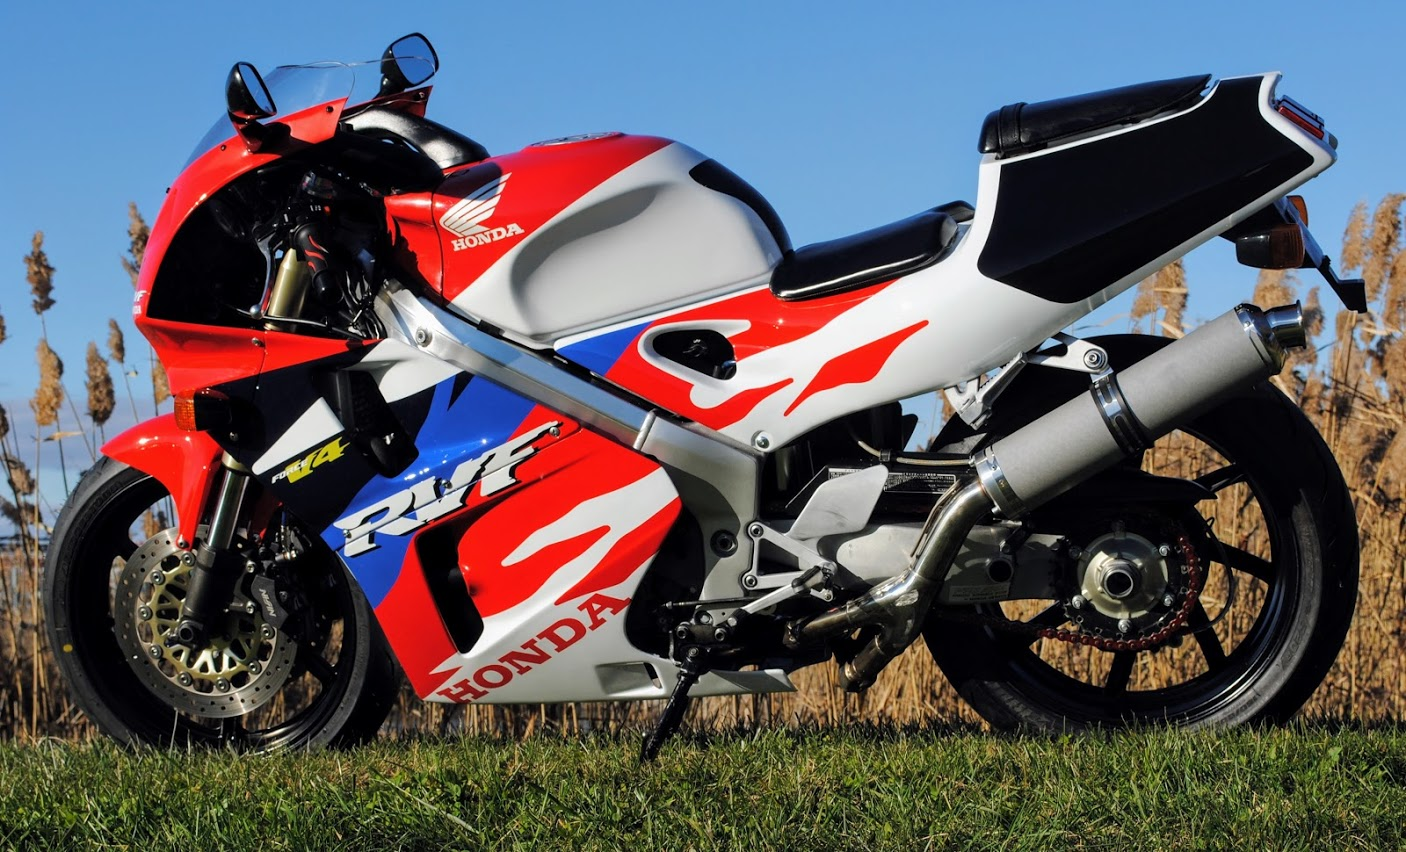 Nc35 Archives Rare Sportbikes For Sale Charging System Wiring And Main Power Supply Circuit Ndash 2006 Aprilia Rs125 Build Quality Reliability Was Above The Rest Of Junior Market Though Price A Dry Weight Just Under 365 Lbs